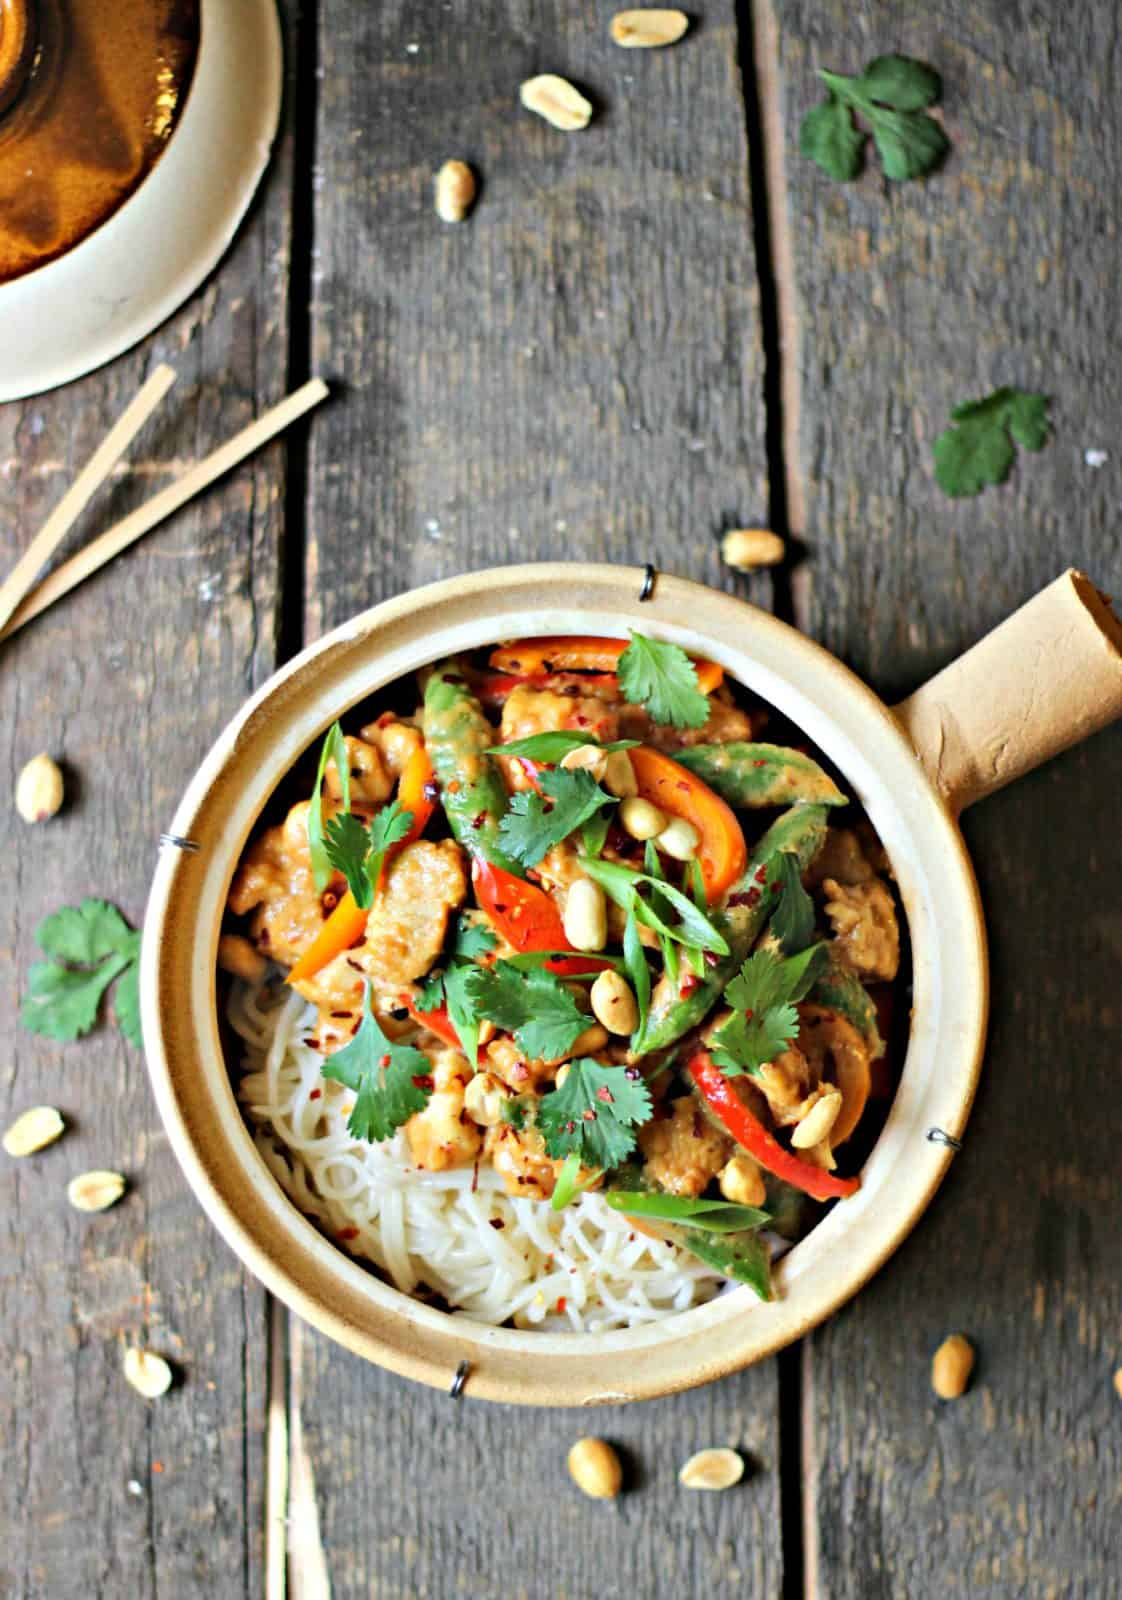 Kung Pao chicken stir fry in a bowl